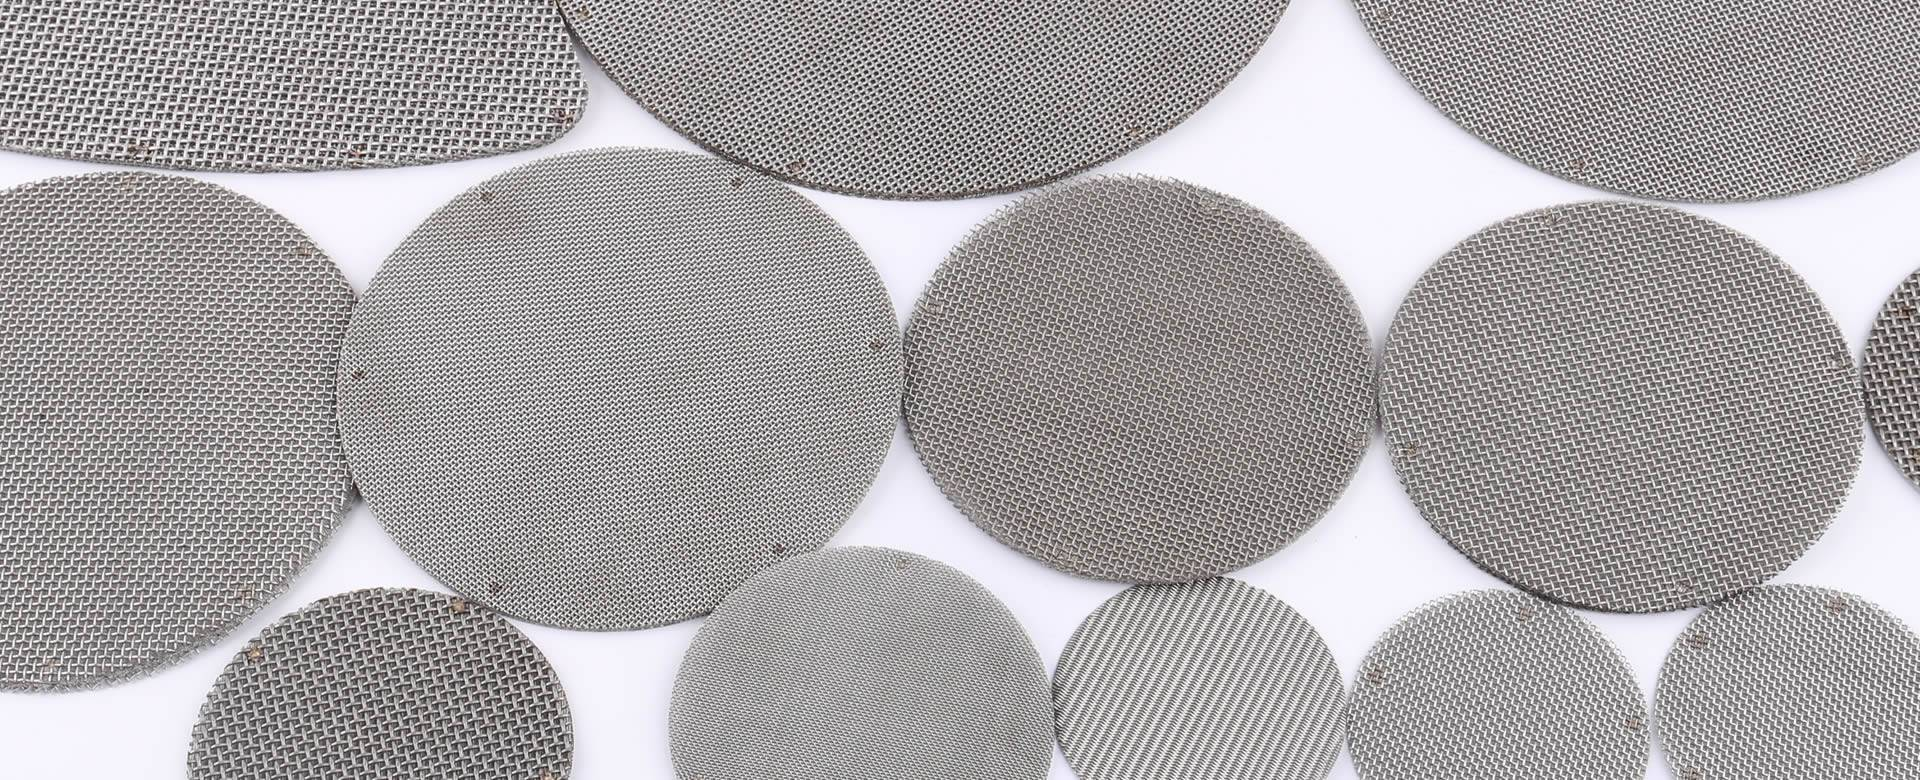 There are several multiple layers of extruder discs with different sizes.